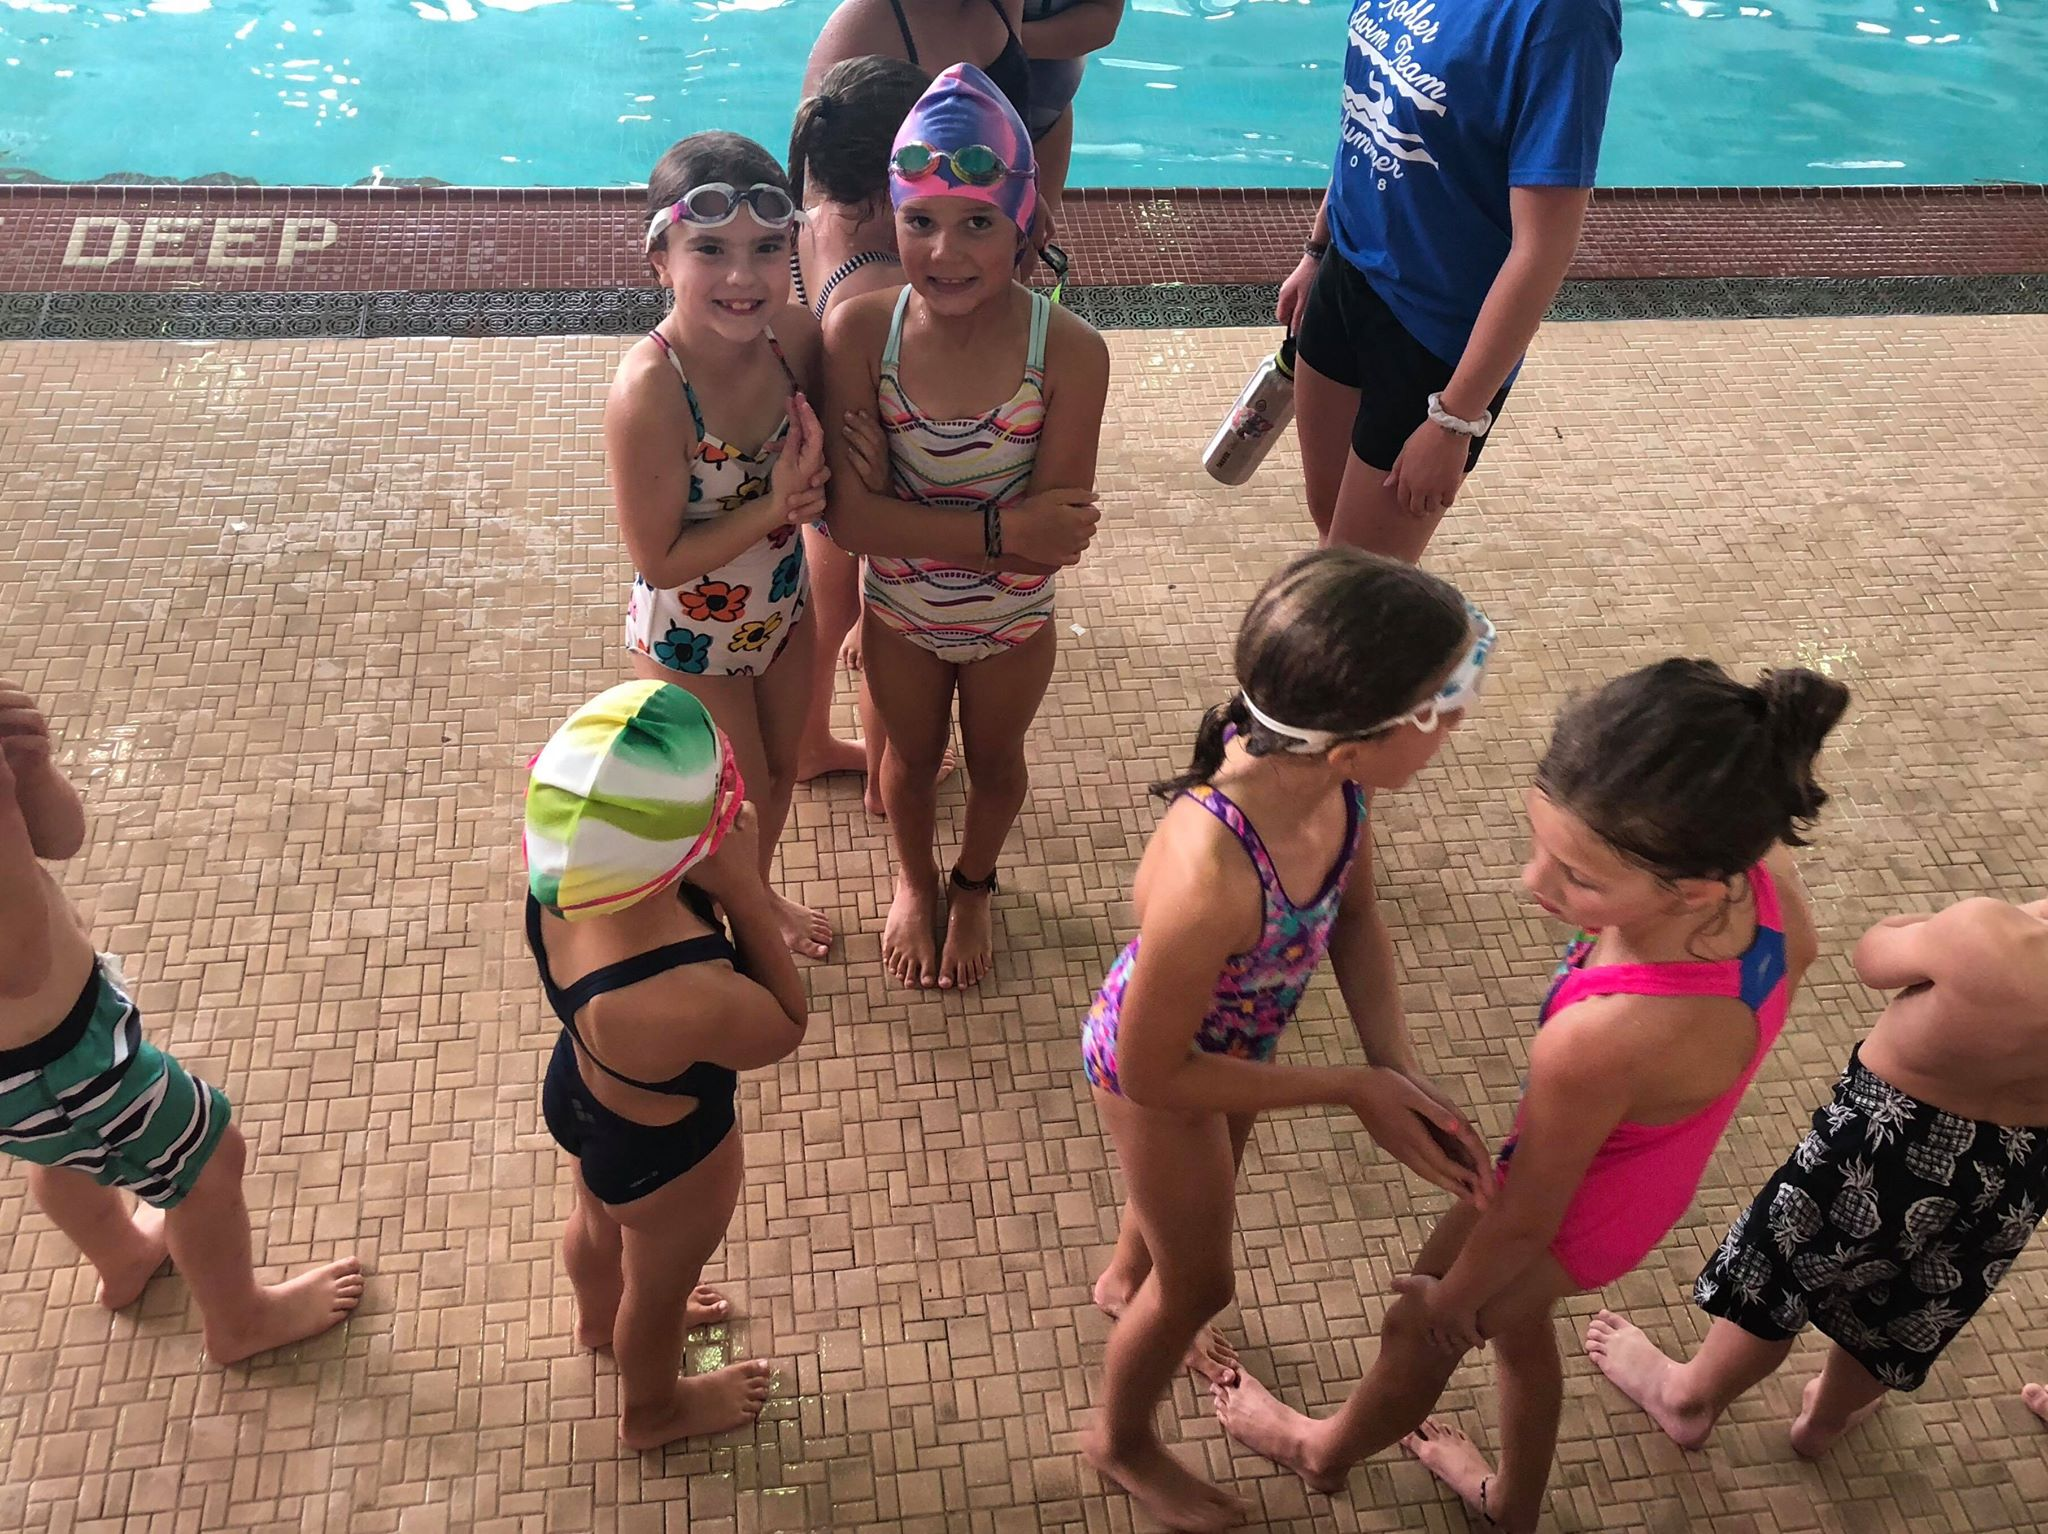 Kids in colorful swim suits at the Kohler Pool